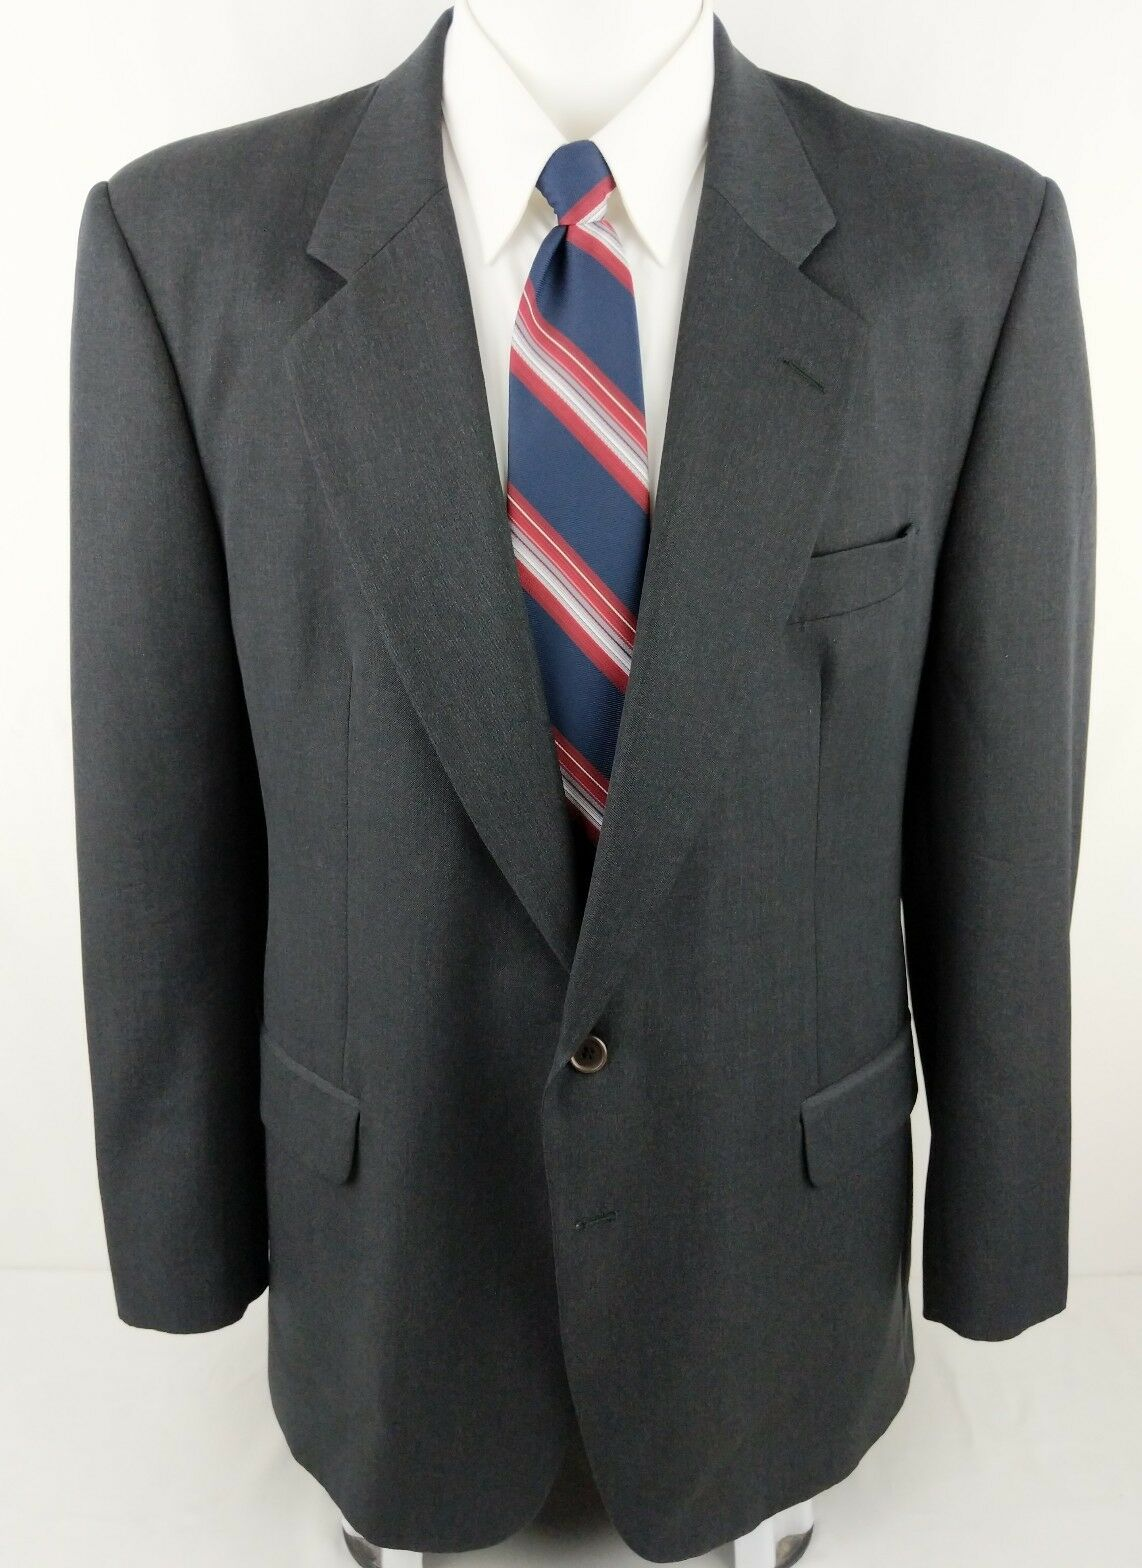 MANGAS Made to Measure Mens 54L EUR   44L USA Smokey Charcoal 2 Btn Lined Blazer